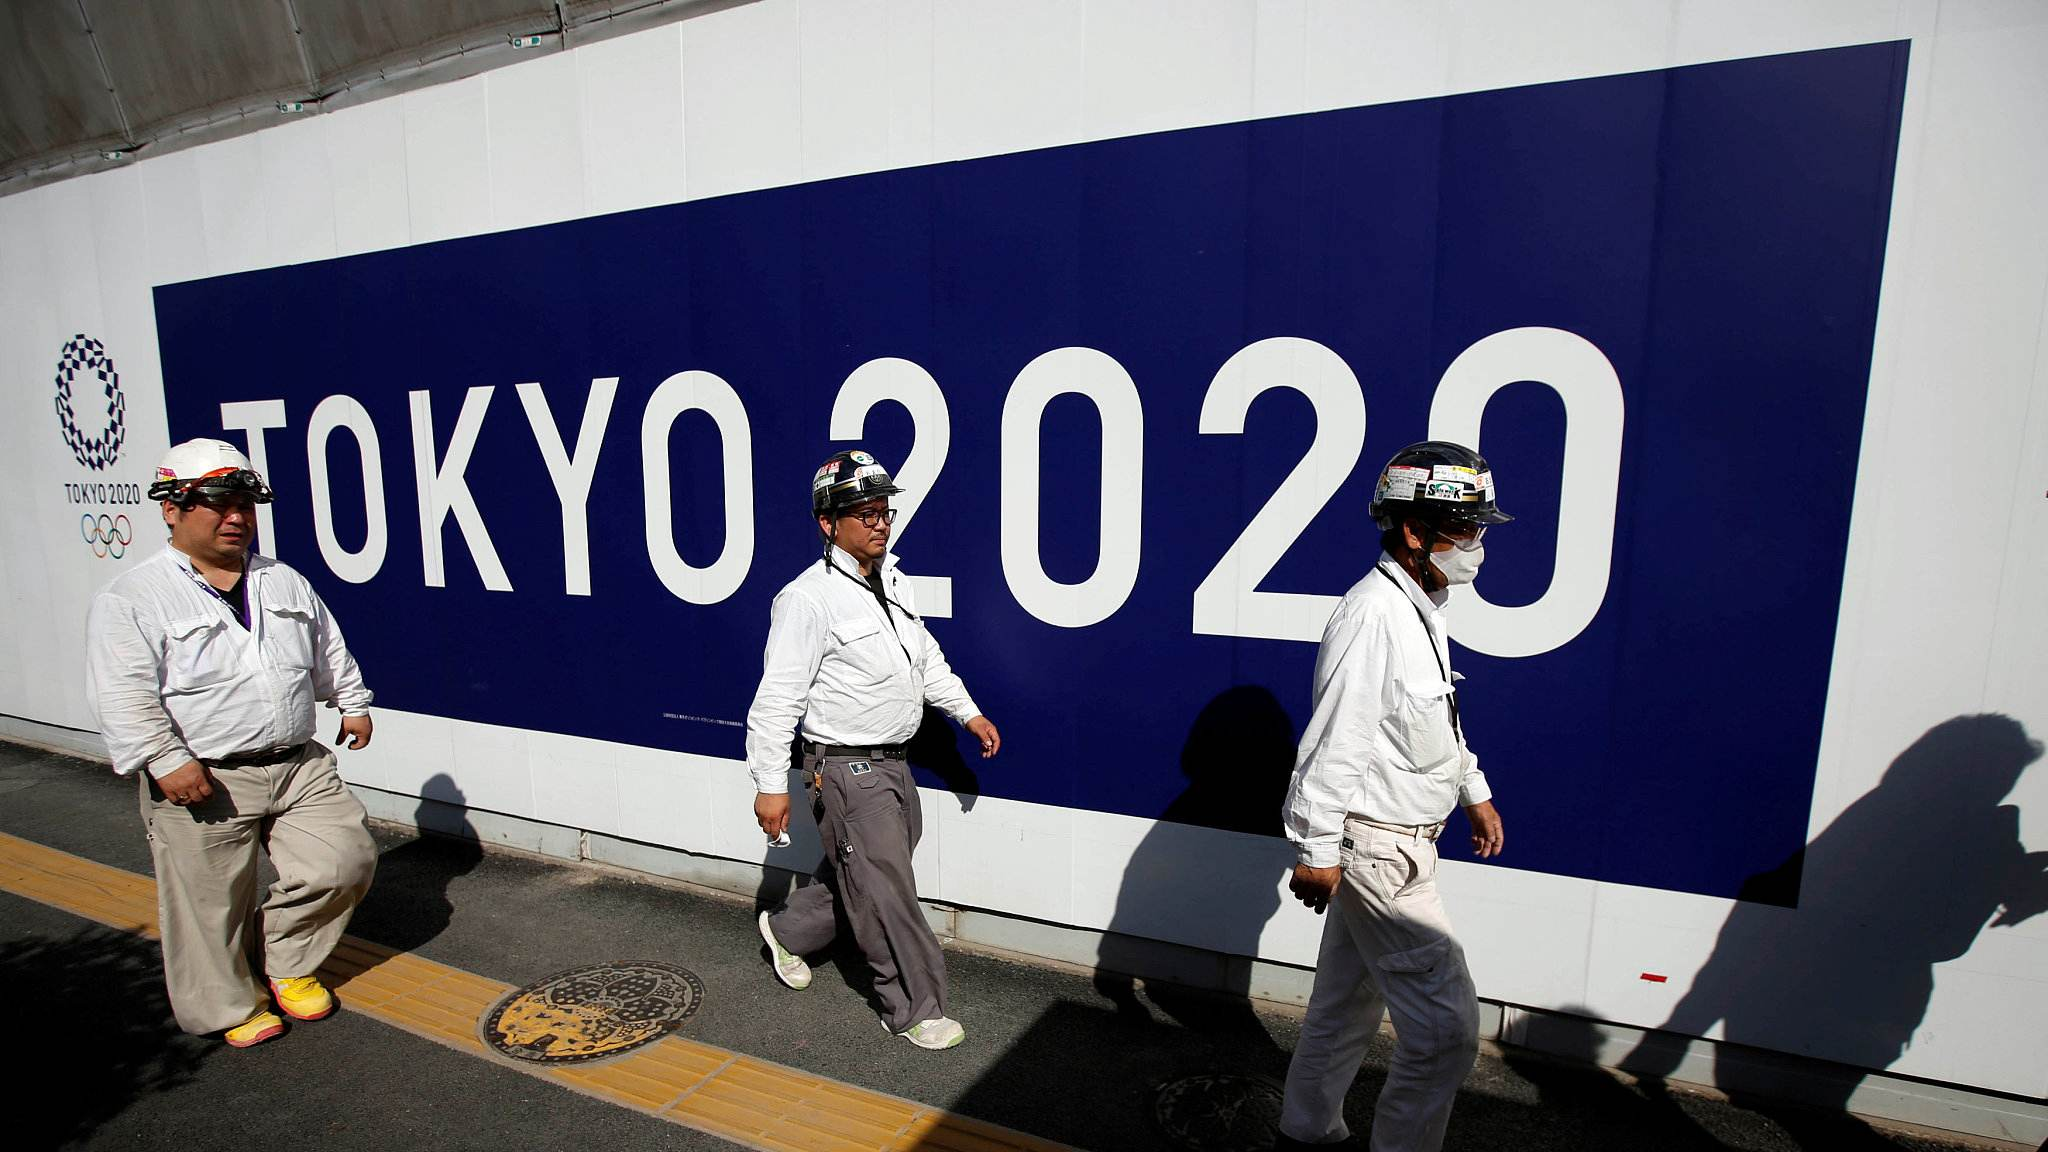 Refugee team to take part in Tokyo 2020 Olympics: IOC